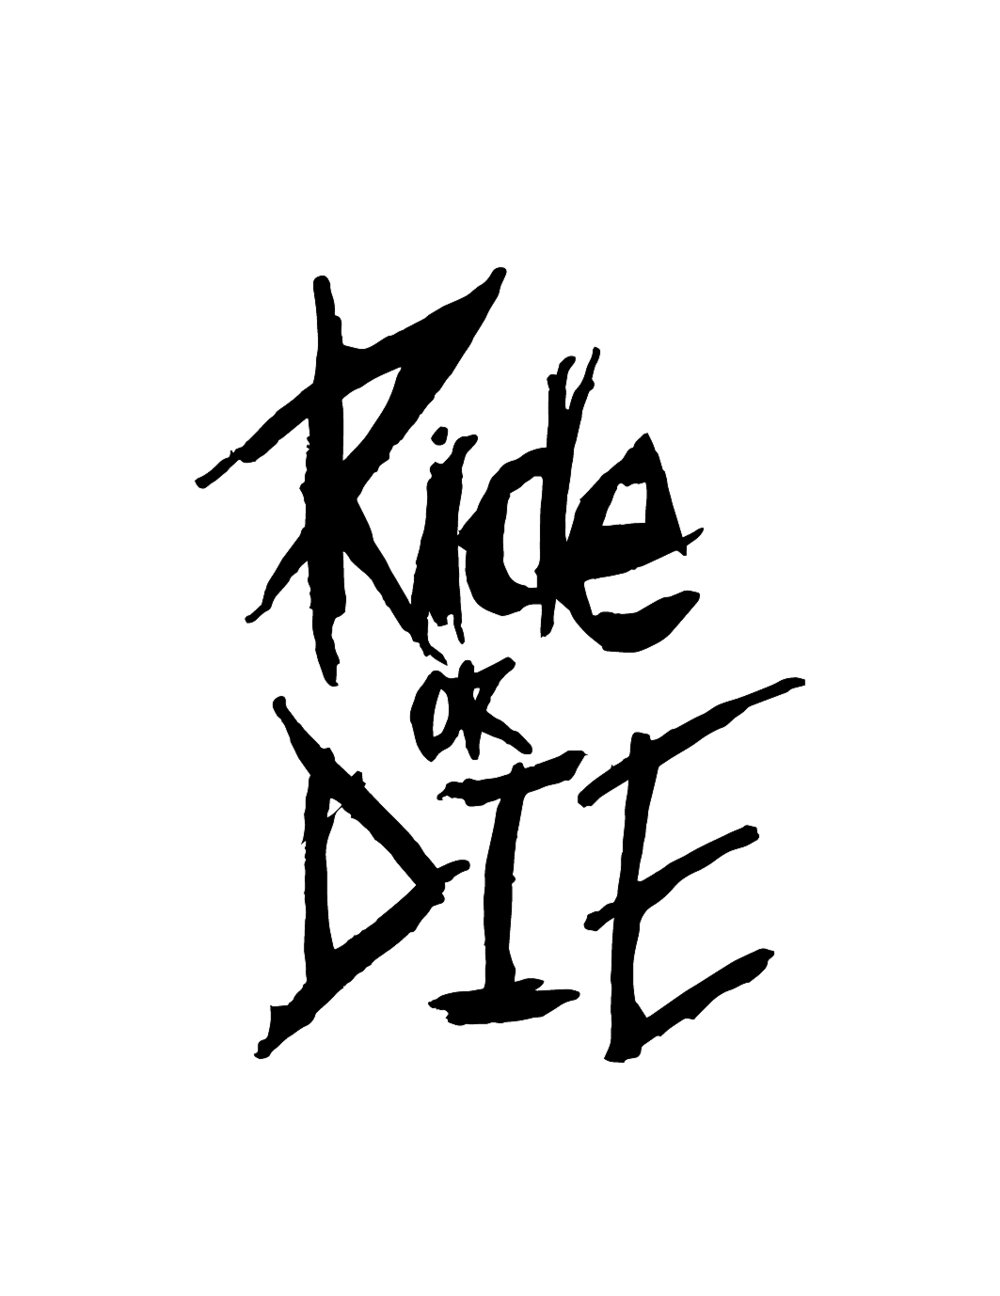 Where does ride or die come from?